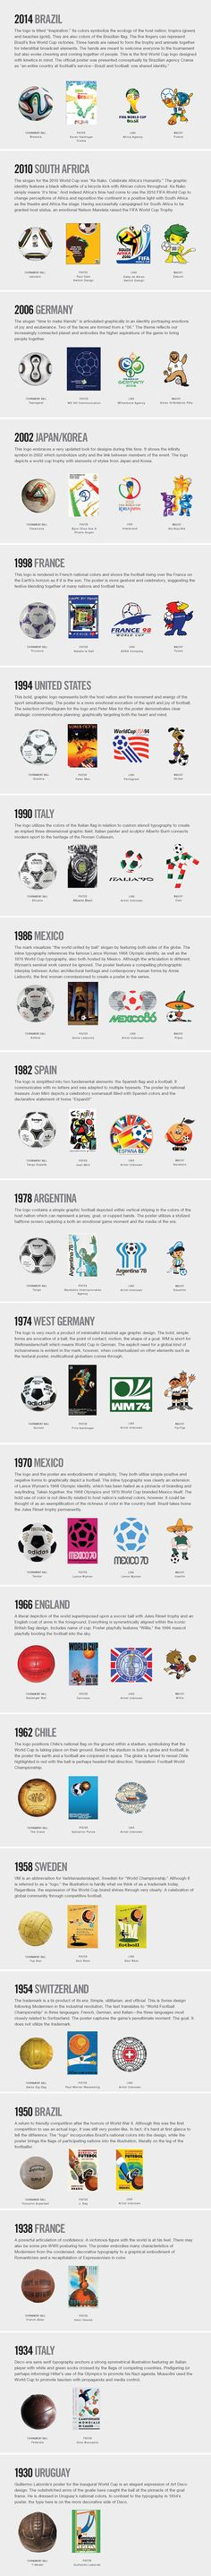 http://stocklogos.com/sites/default/files/law_blog_worldcup_infographic_071114-01_1.jpg